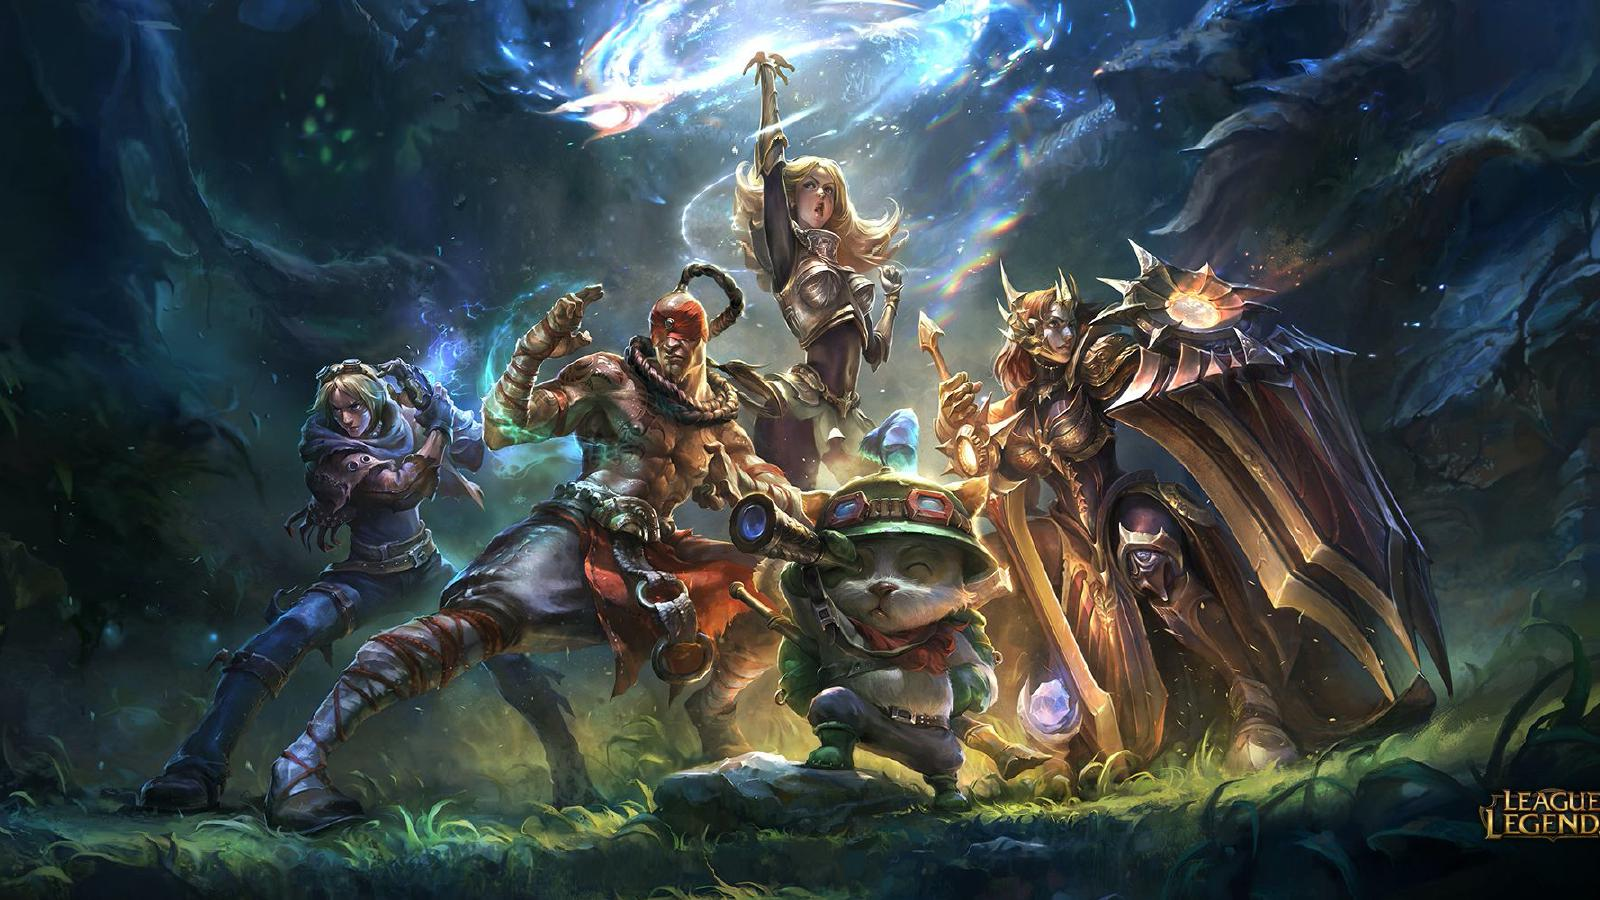 League Of Legend: Viego In 2021